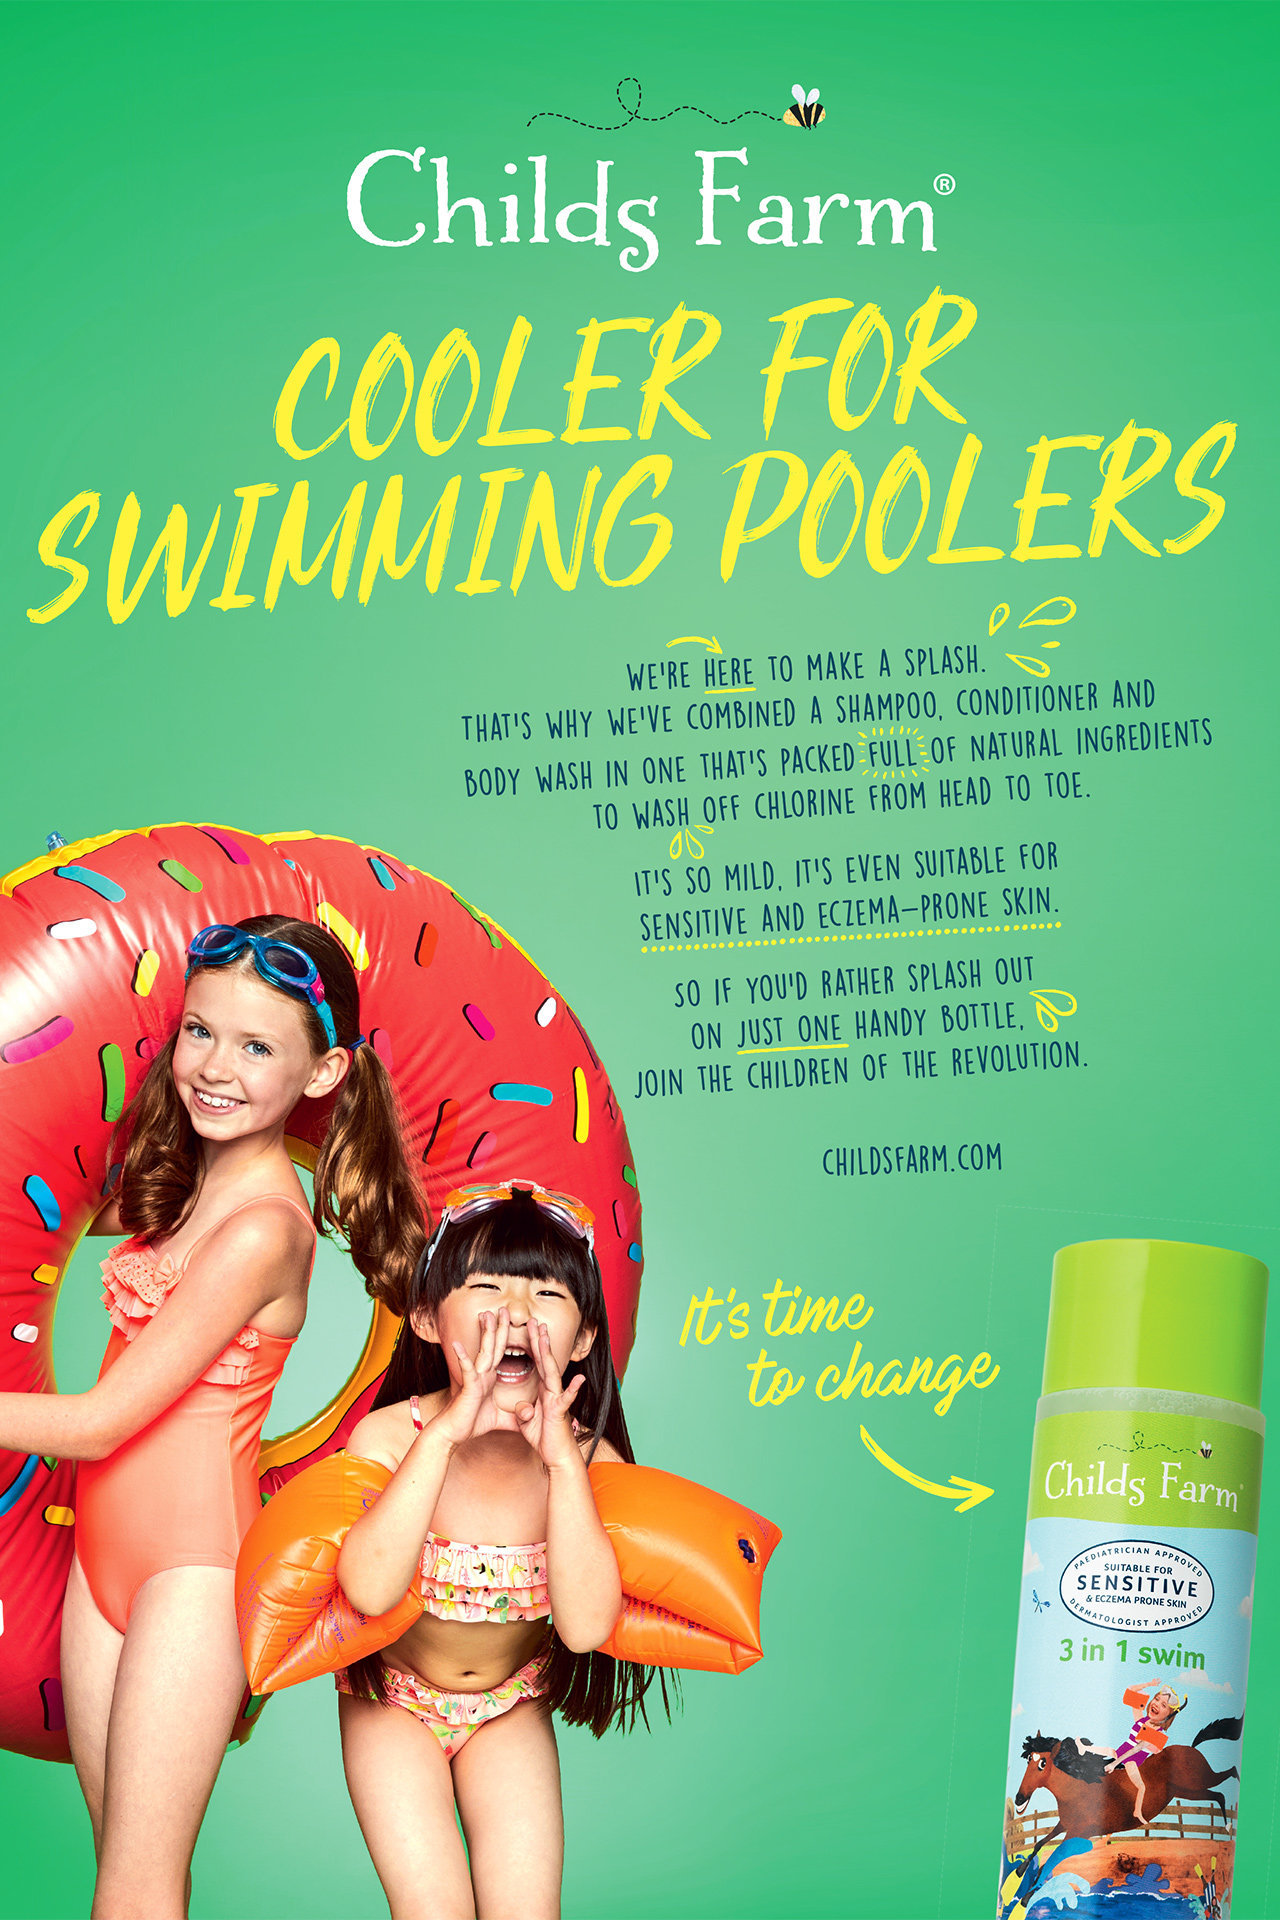 Childs-Farm-Master-Ad_SWIMMING-POOLERS.jpg